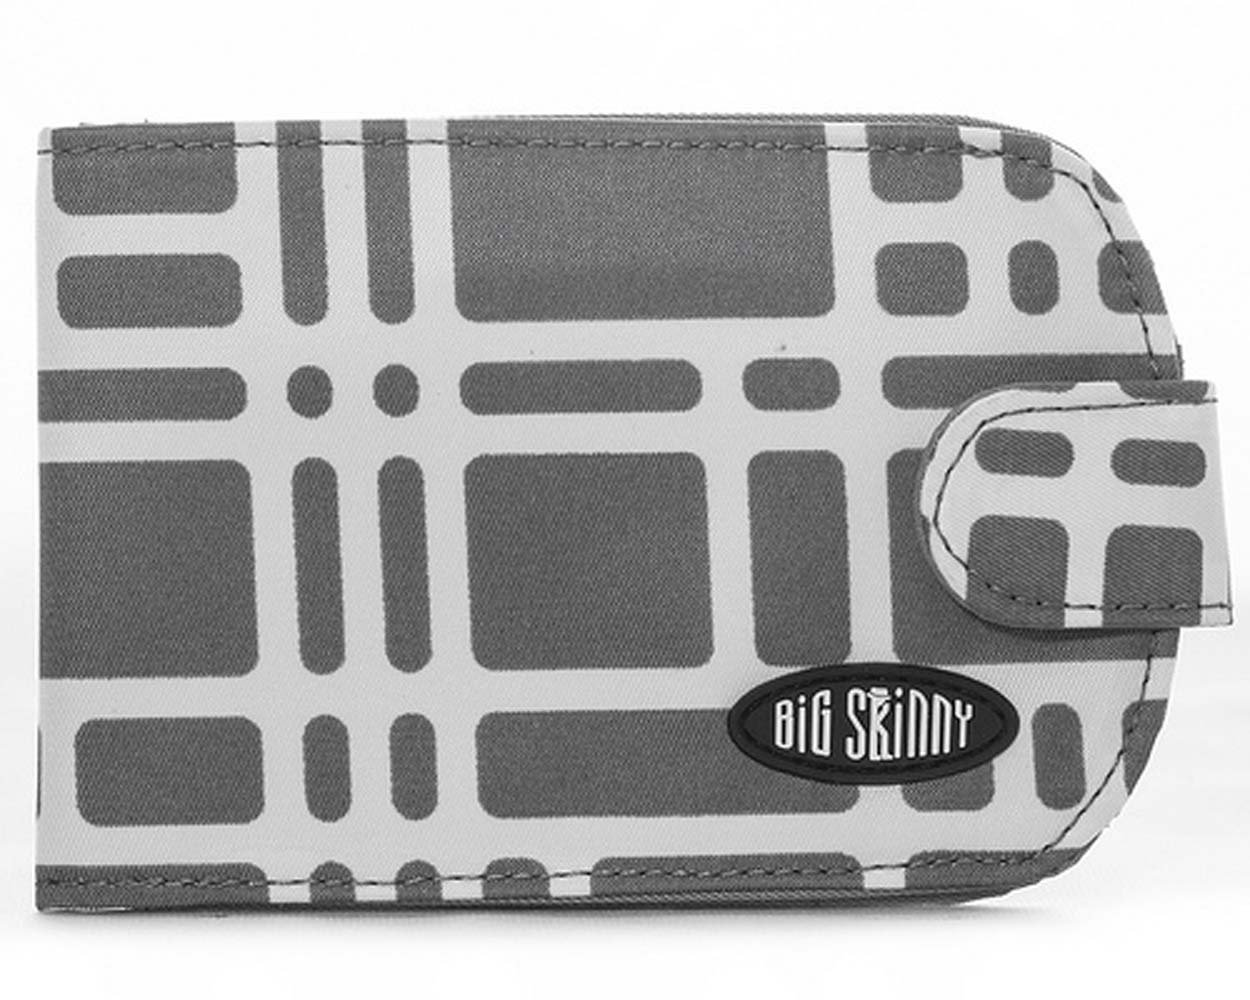 Big Skinny Women's Taxicat Bi-Fold Slim Wallet, Holds Up to 25 Cards, Graphite Cobble